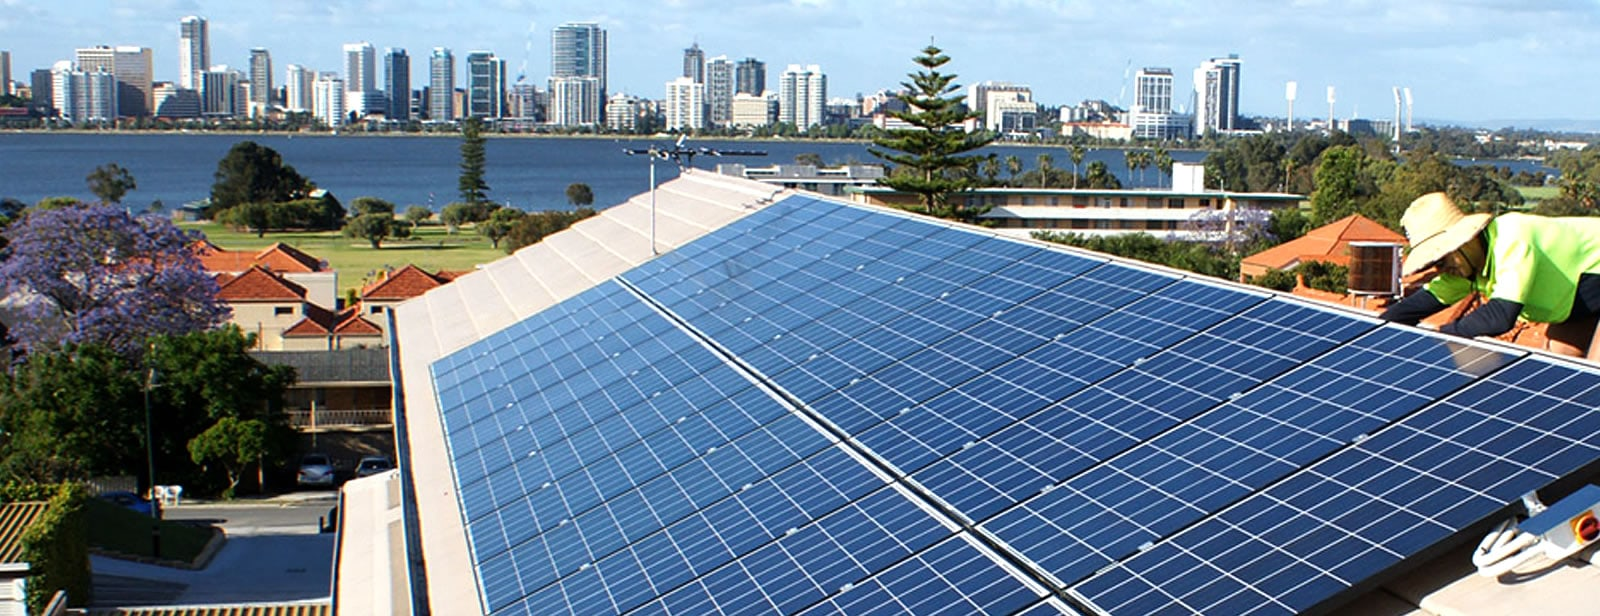 Best Solar Companies Adelaide Best Solar Companies Adelaide